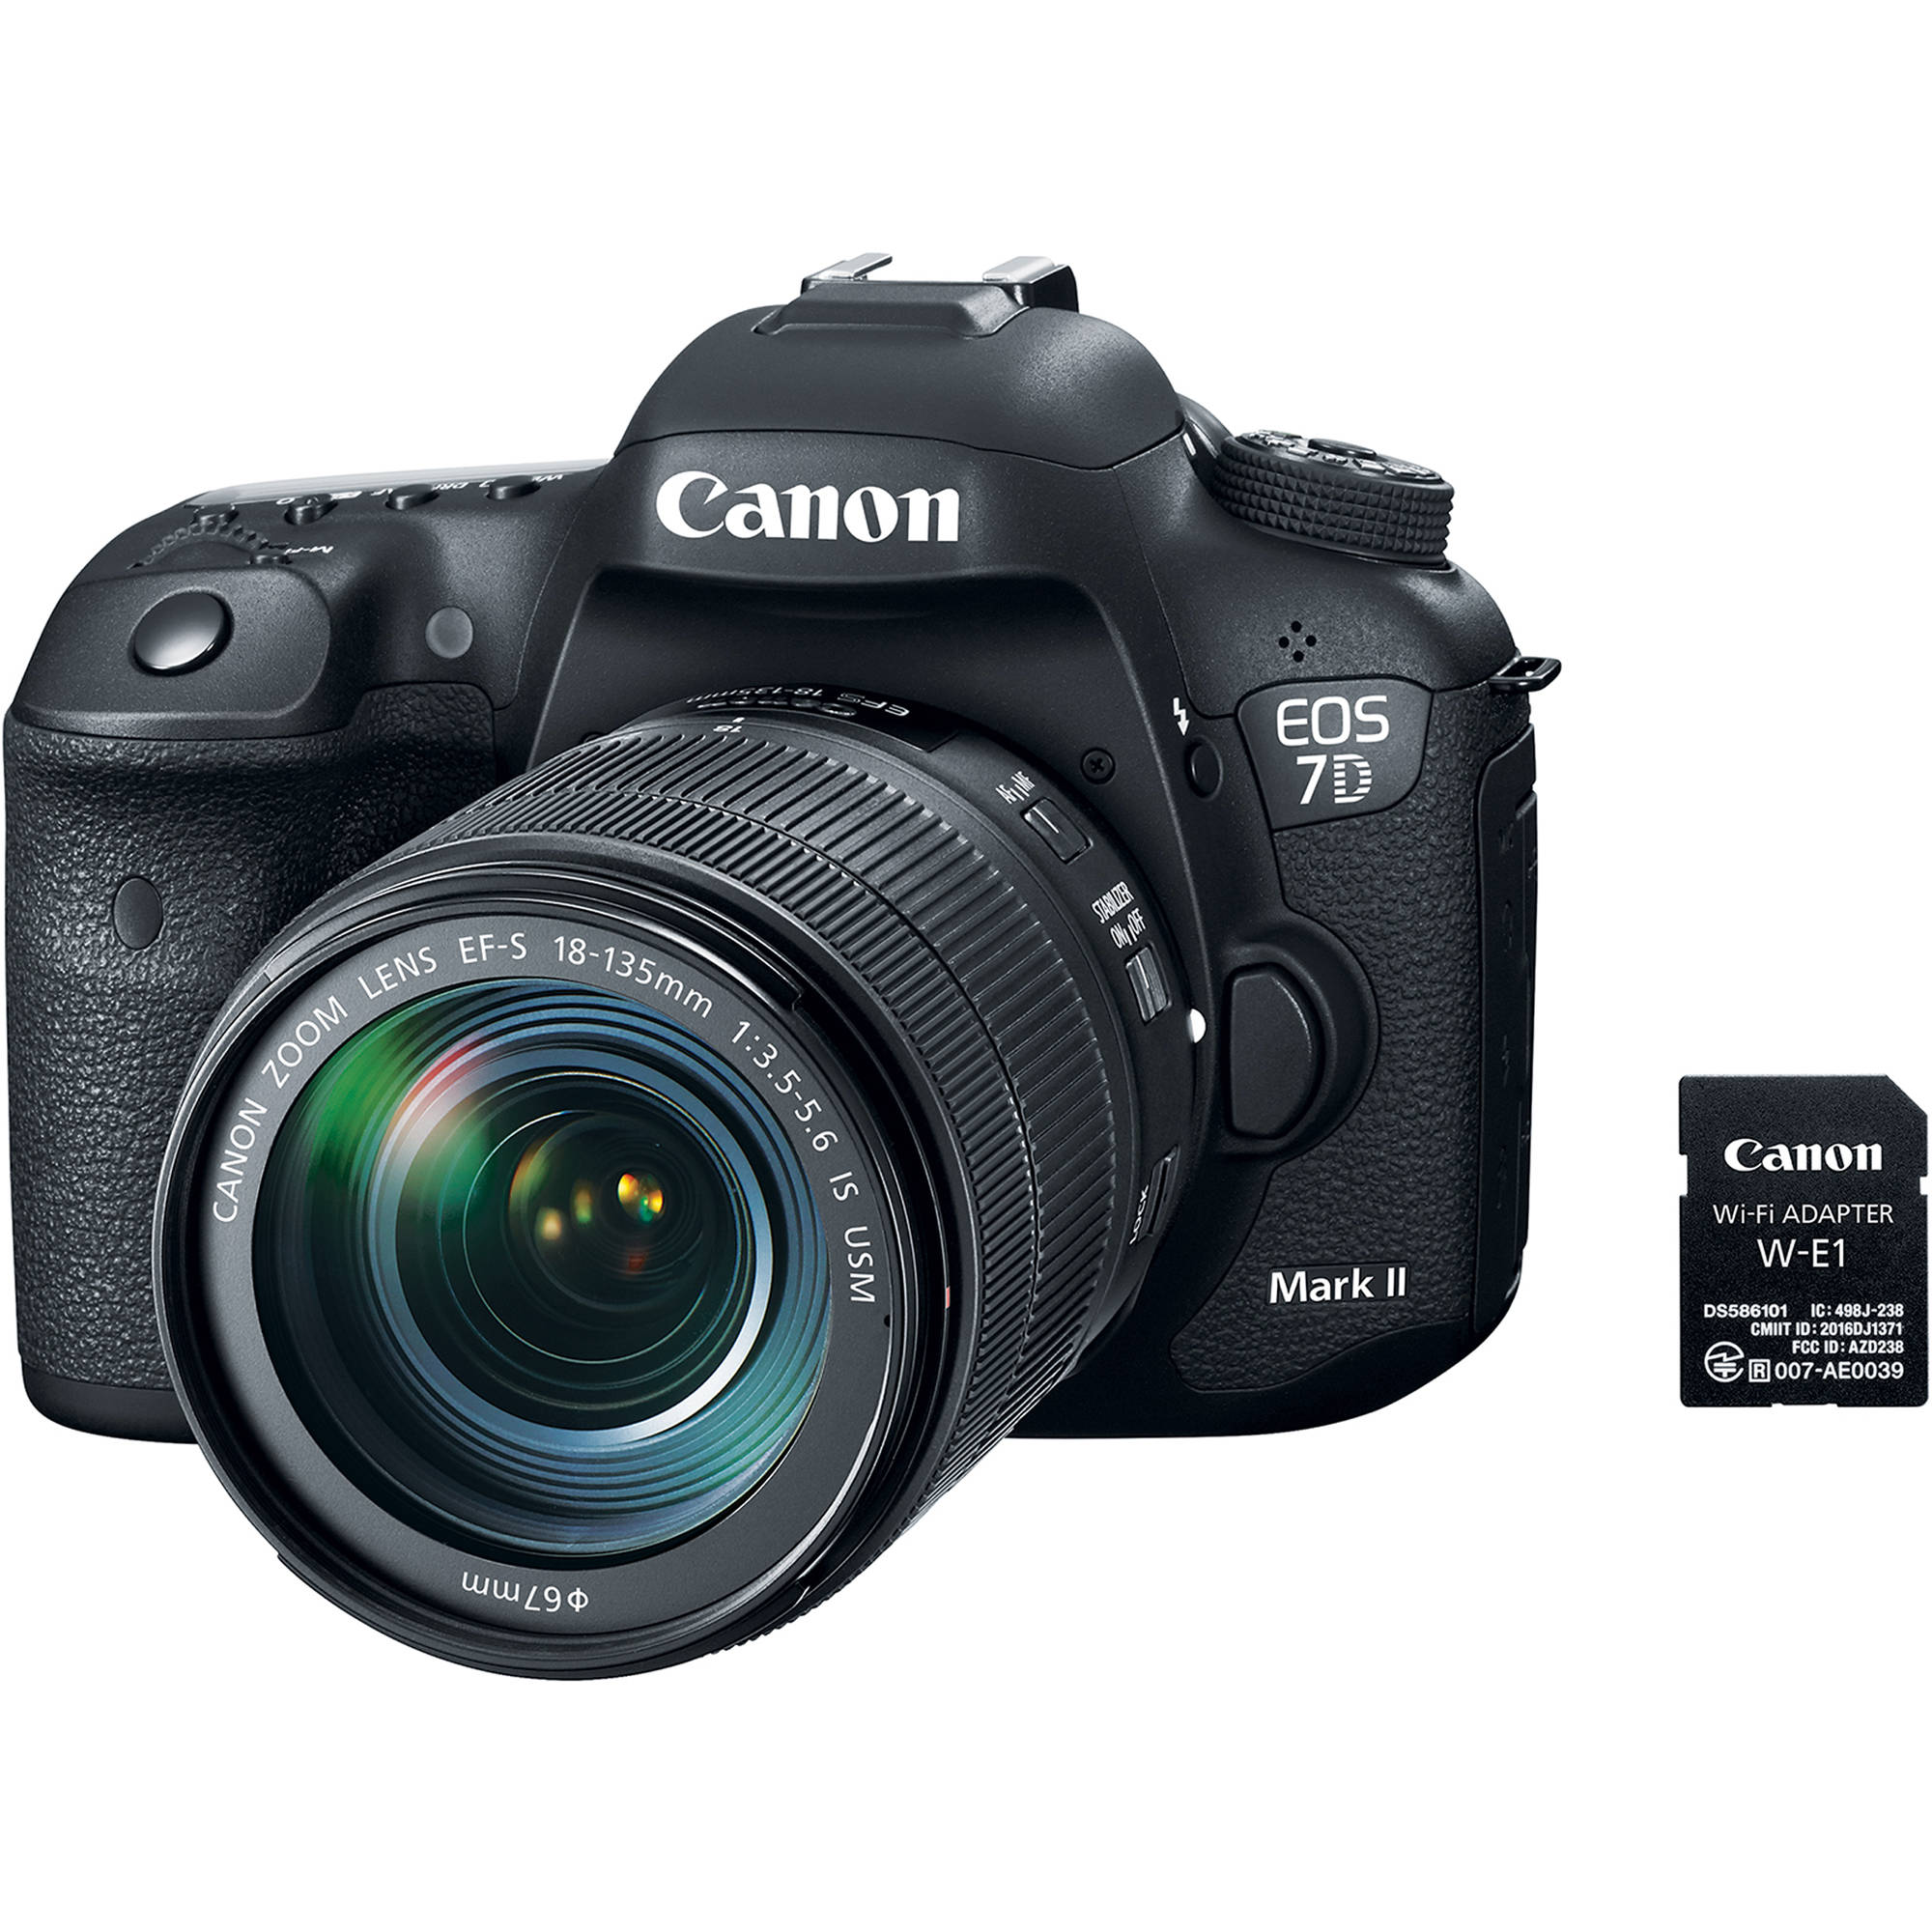 Canon EOS 7D Camera Drivers for Windows 7